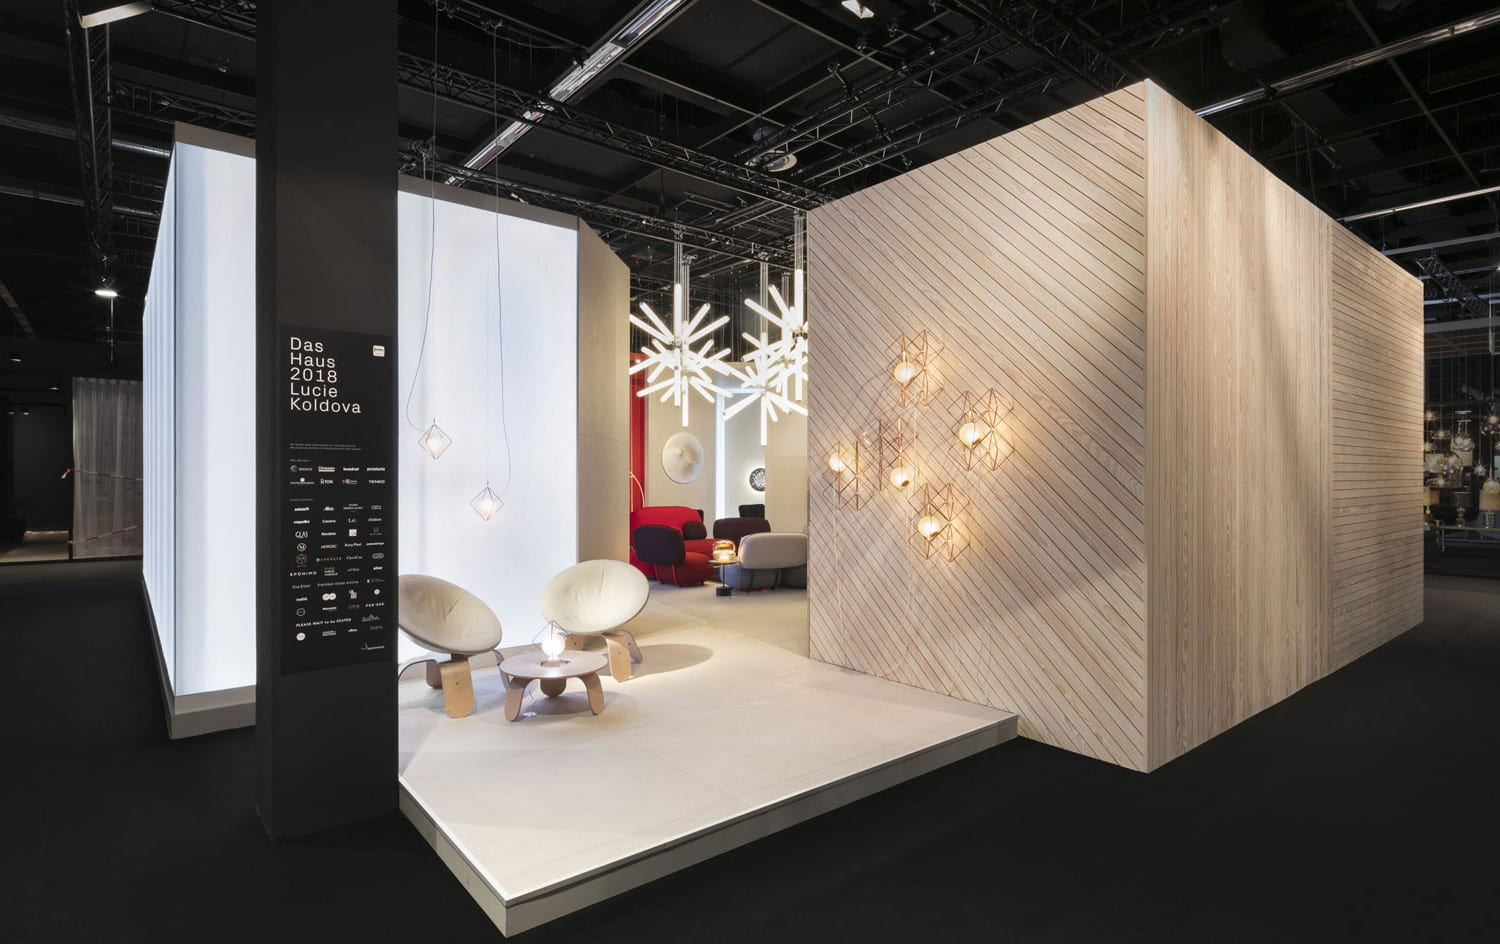 Das Haus by Lucie Koldova at IMM Cologne 2018   Yellowtrace